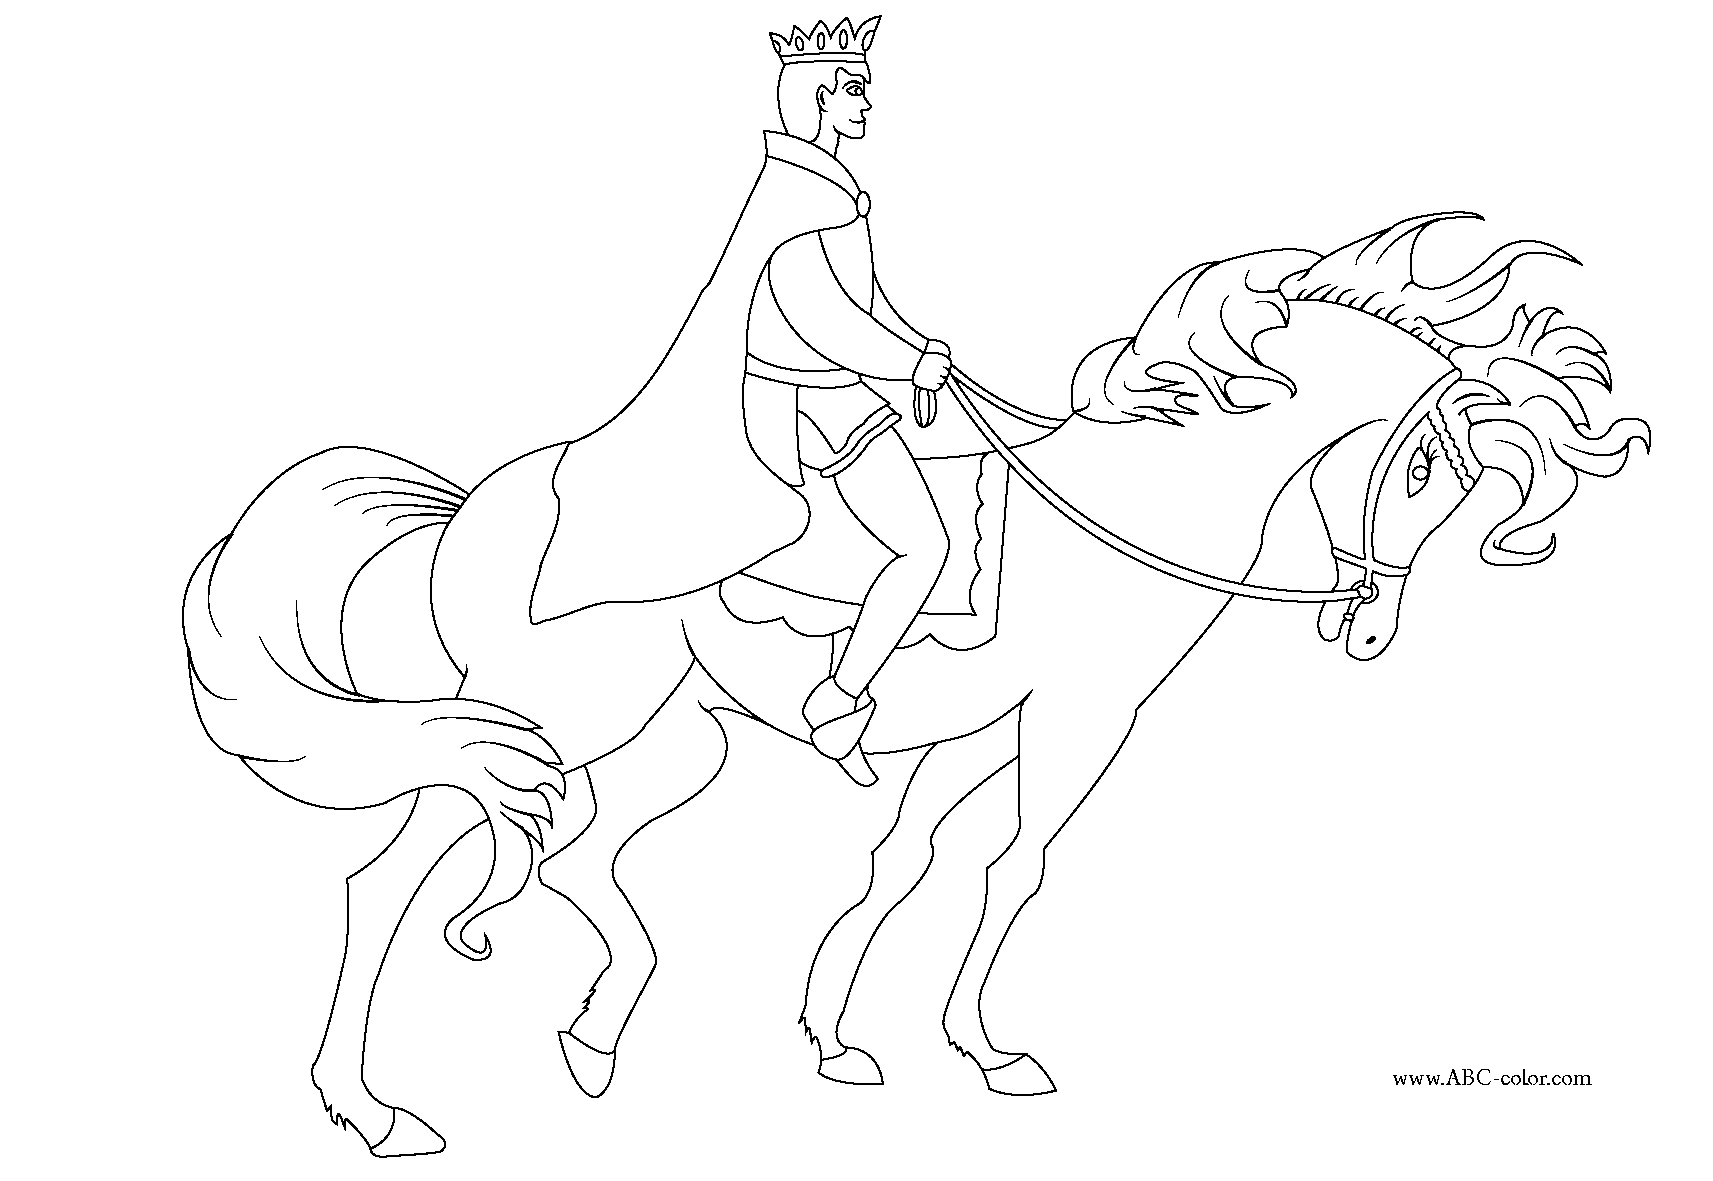 Handsome Prince Coloring Pages - Coloring Home